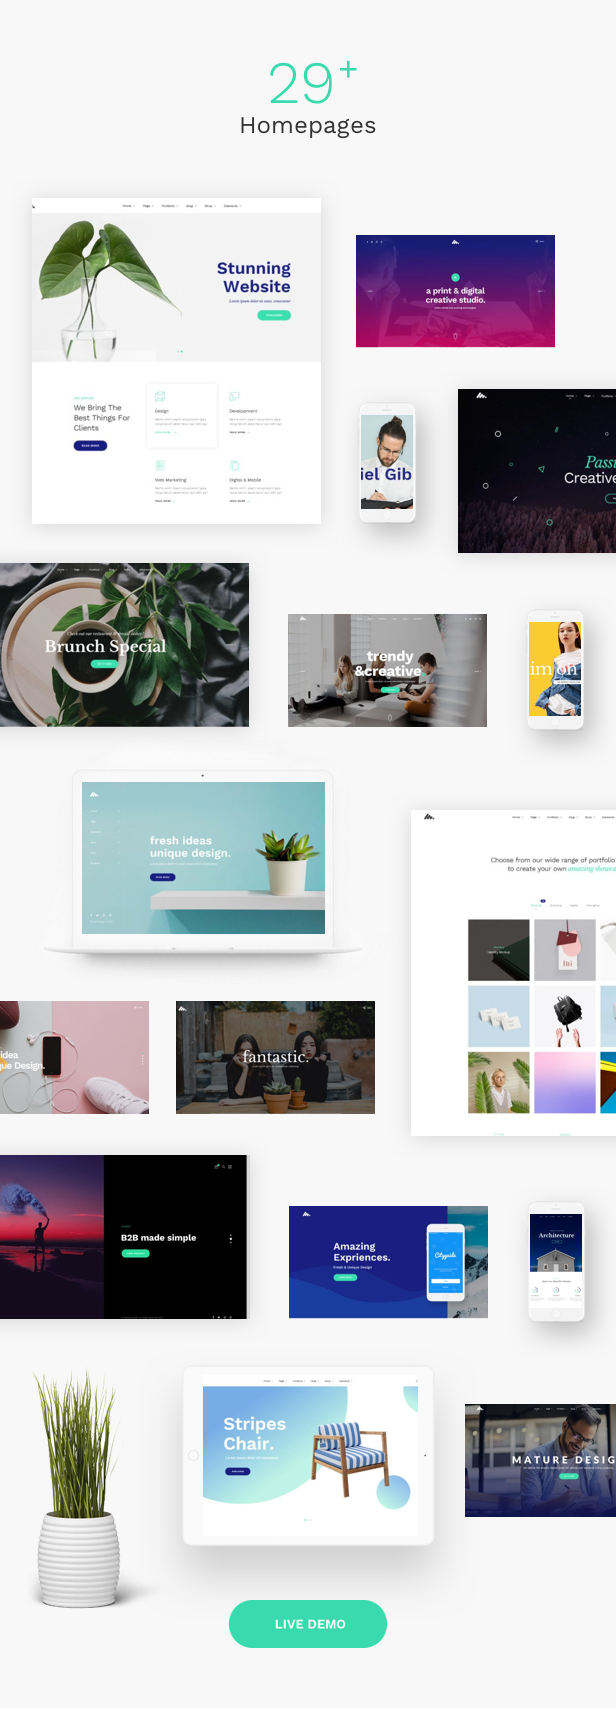 Corporate Business Agency WordPress Theme - 29+ Homepages